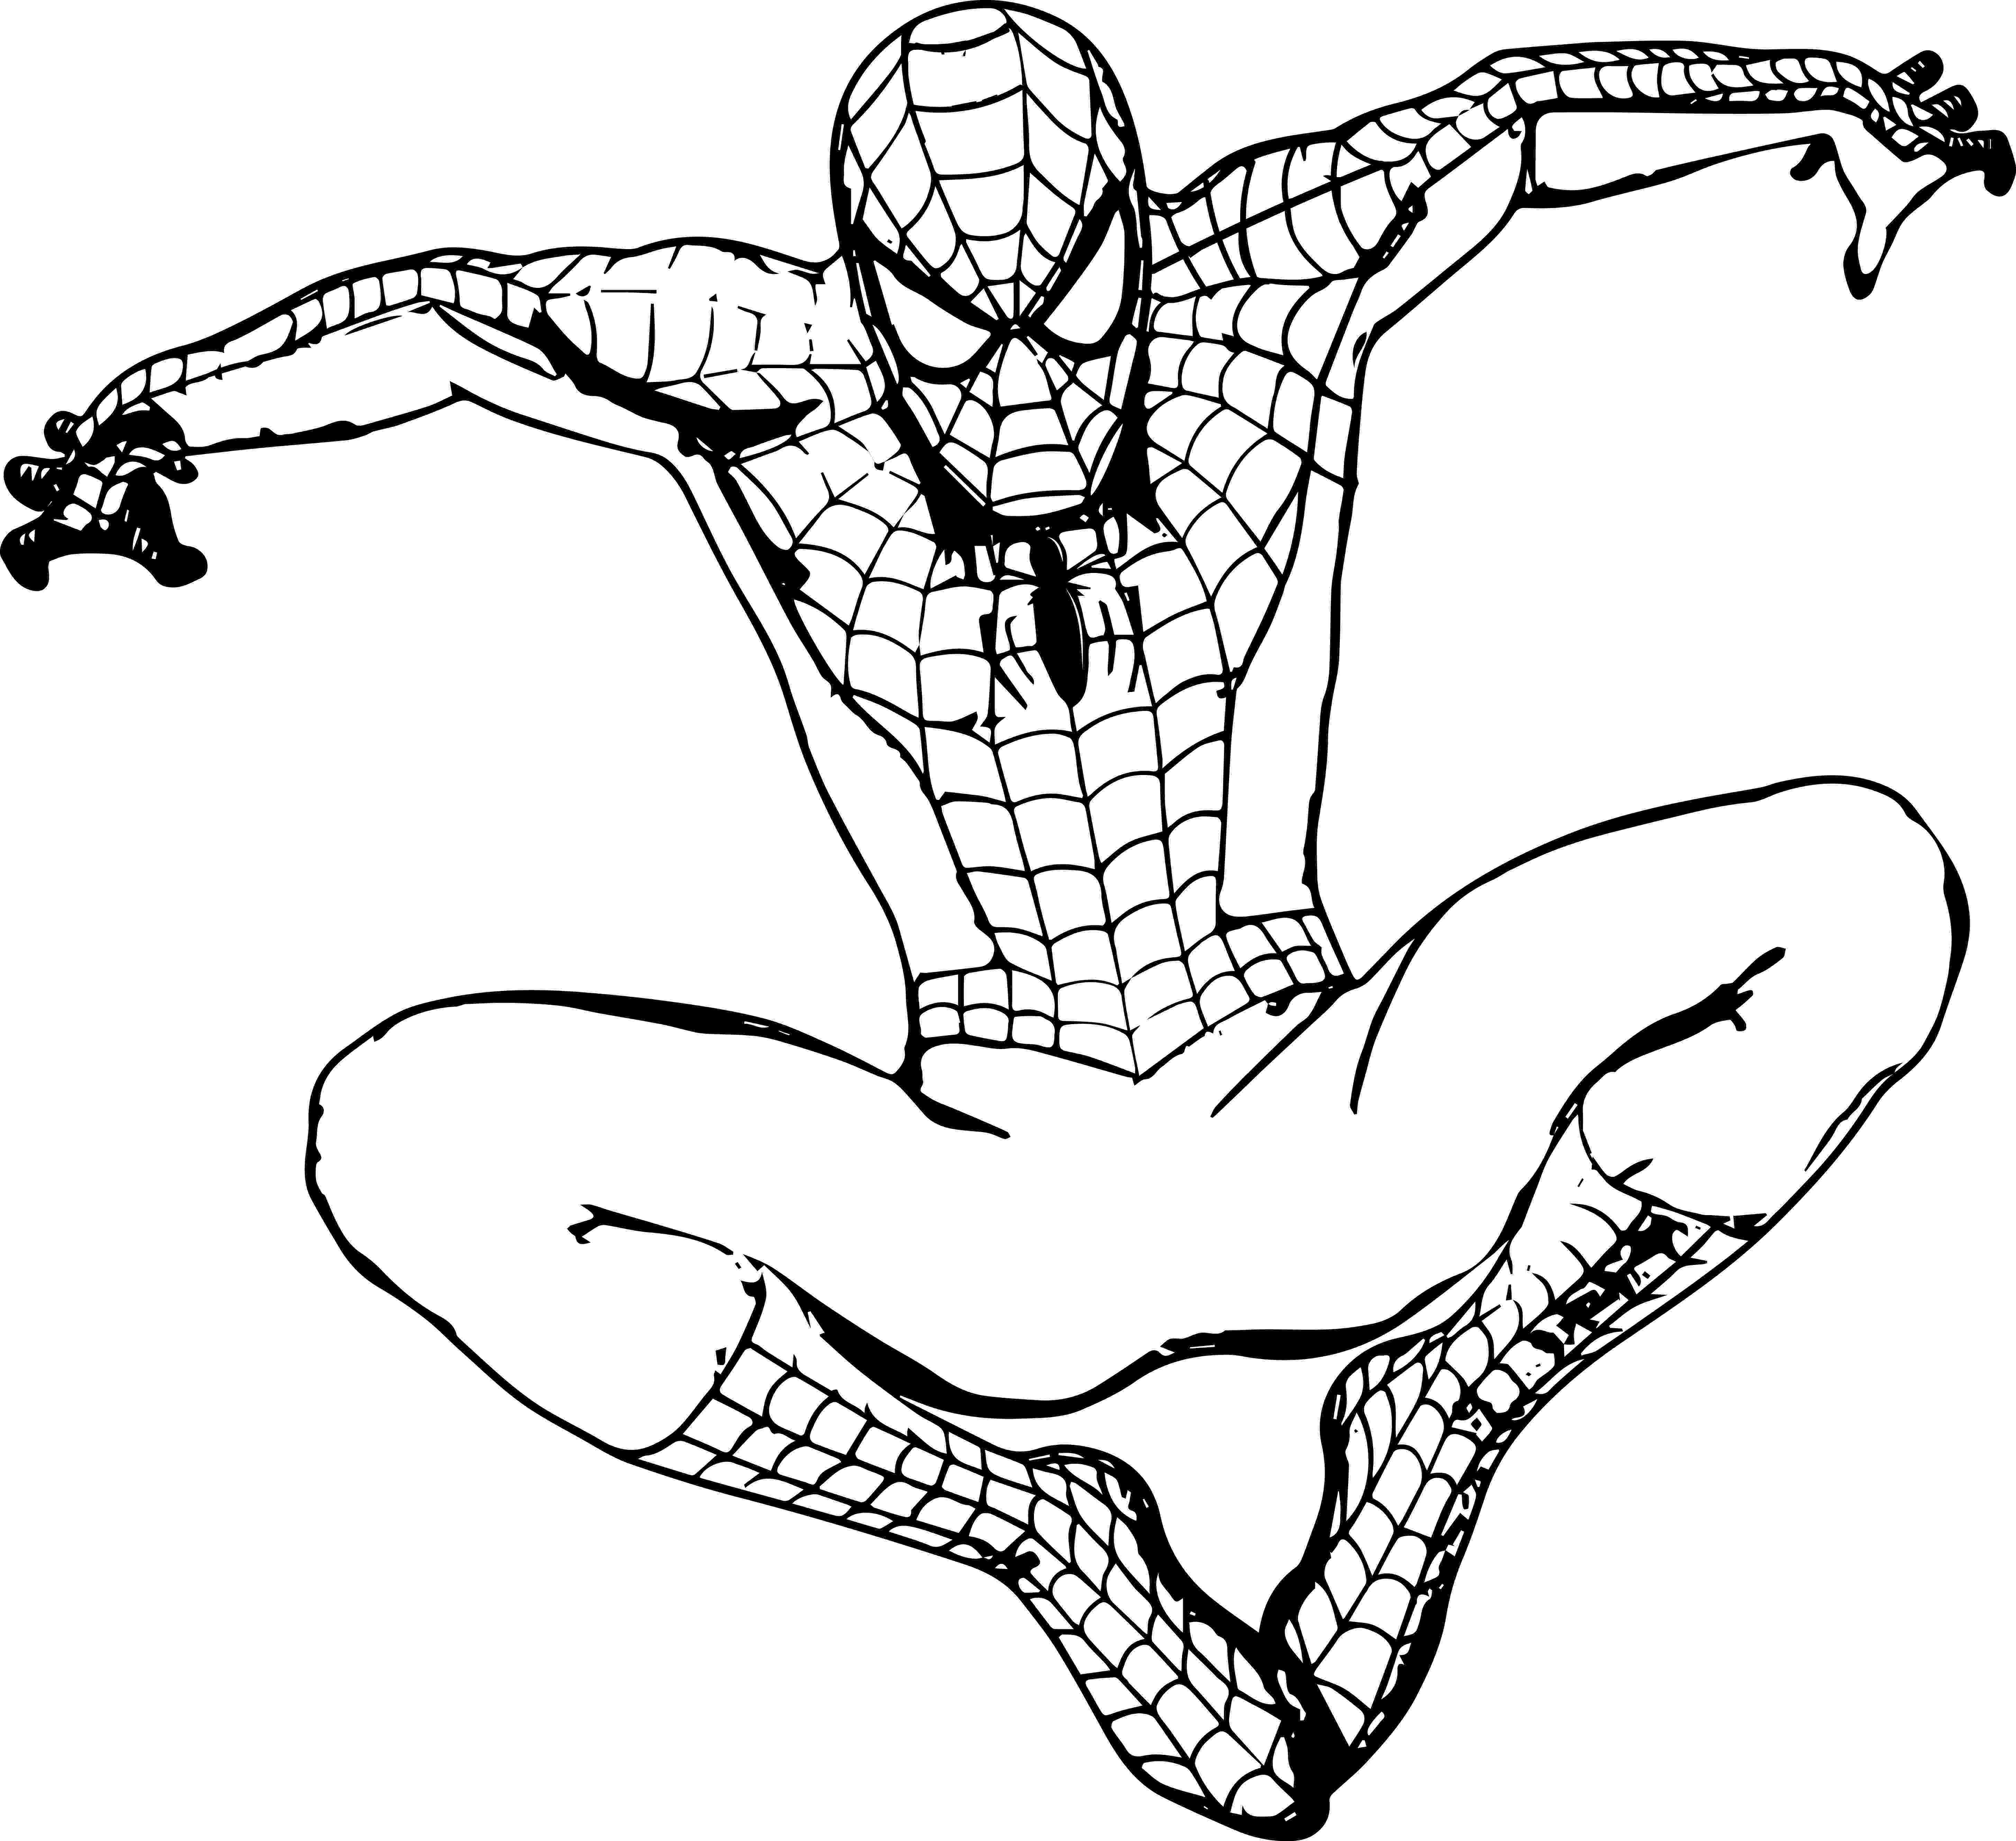 spiderman colouring pages printable 30 spiderman colouring pages printable colouring pages pages printable colouring spiderman